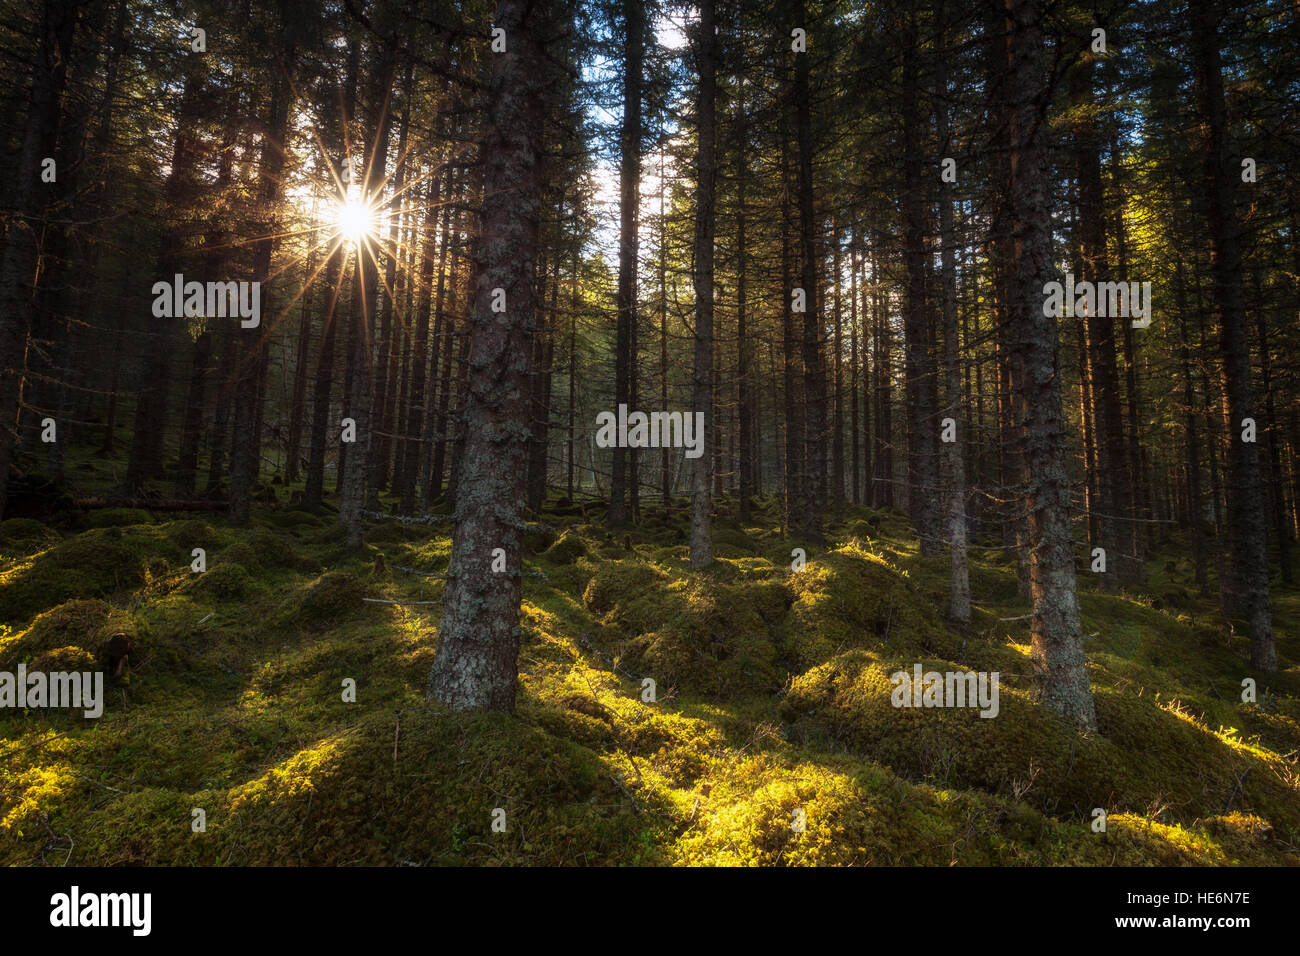 Light in the boreal forest, Norway. - Stock Image